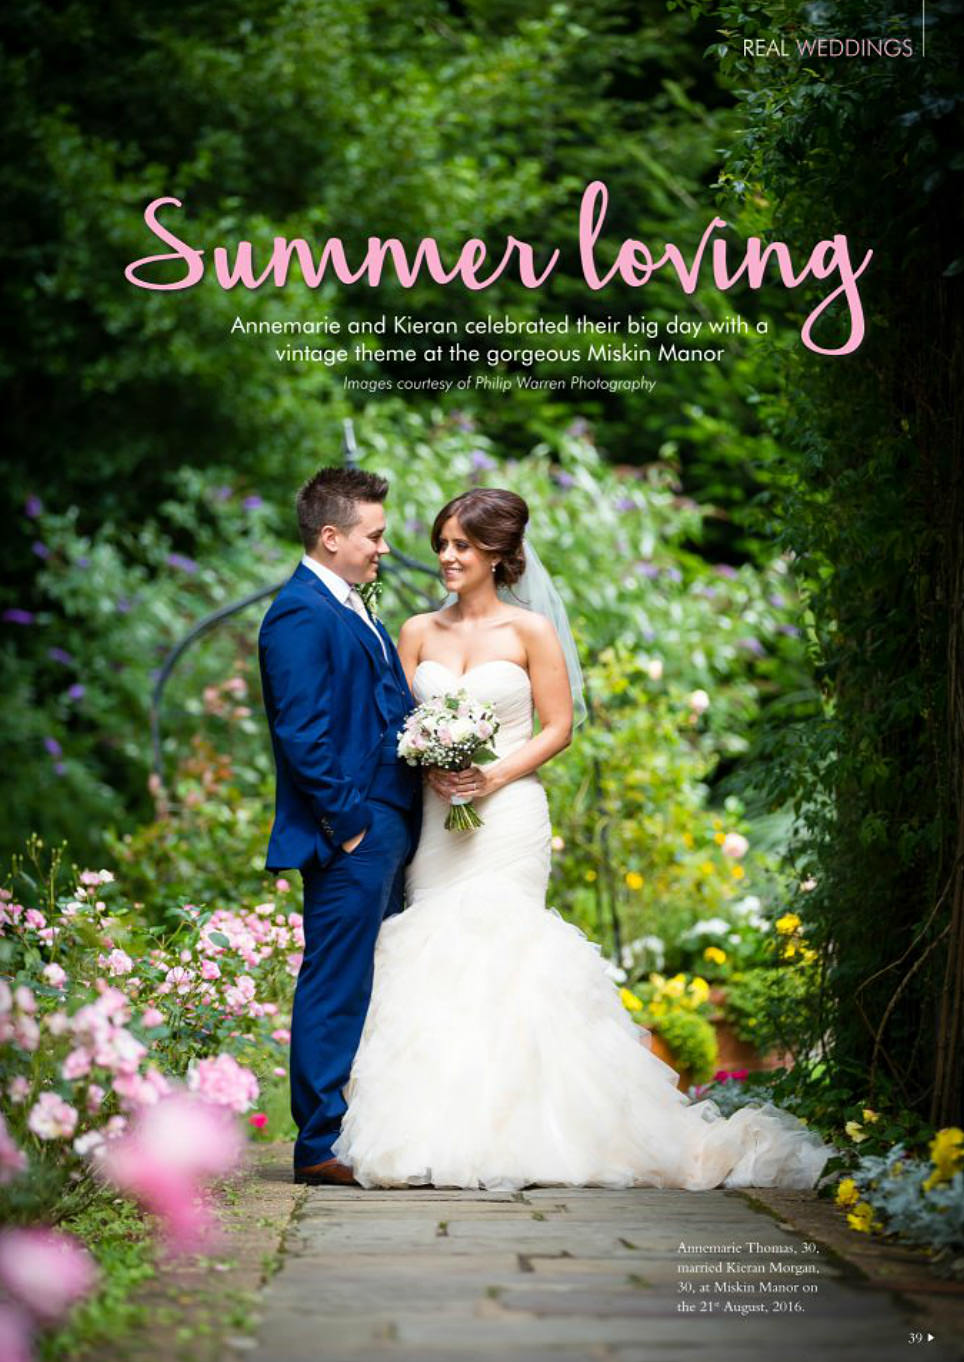 Your-south-wales-wedding-magazine-feature.jpg